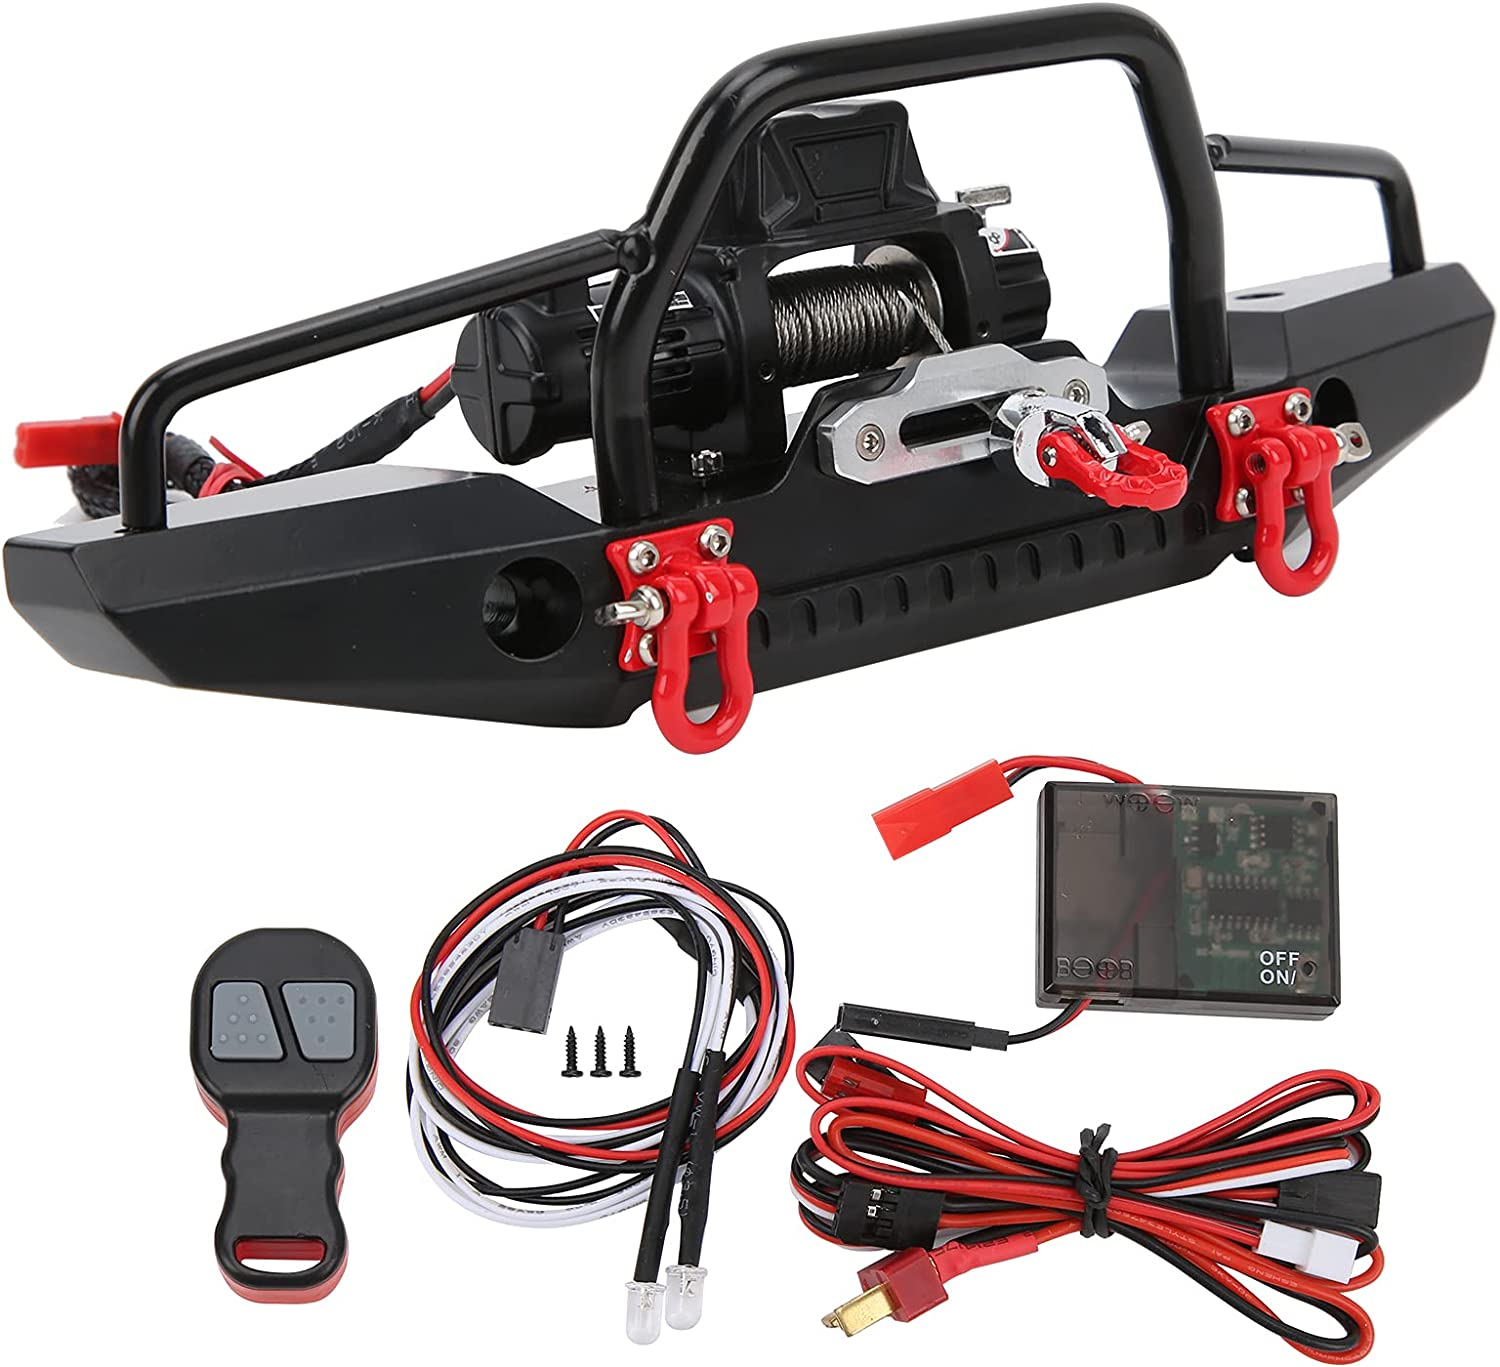 Jopwkuin RC lowest price Front Bumper Remo Winch Set safety with